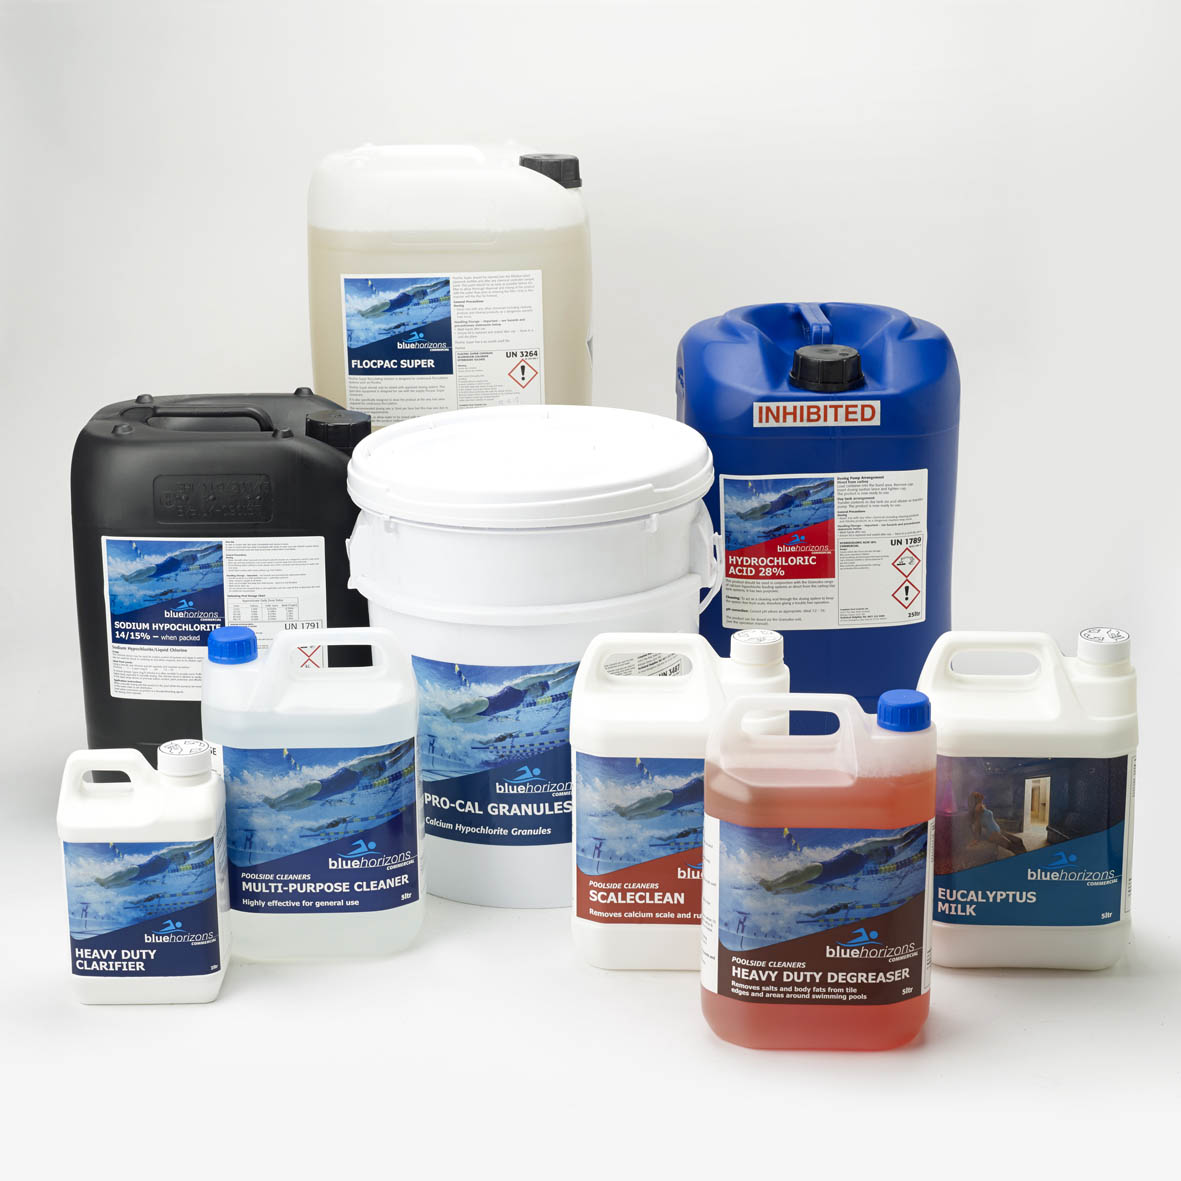 Swimming pool chemicals and equipment 2015 for Swimming pool cleaning chemicals list